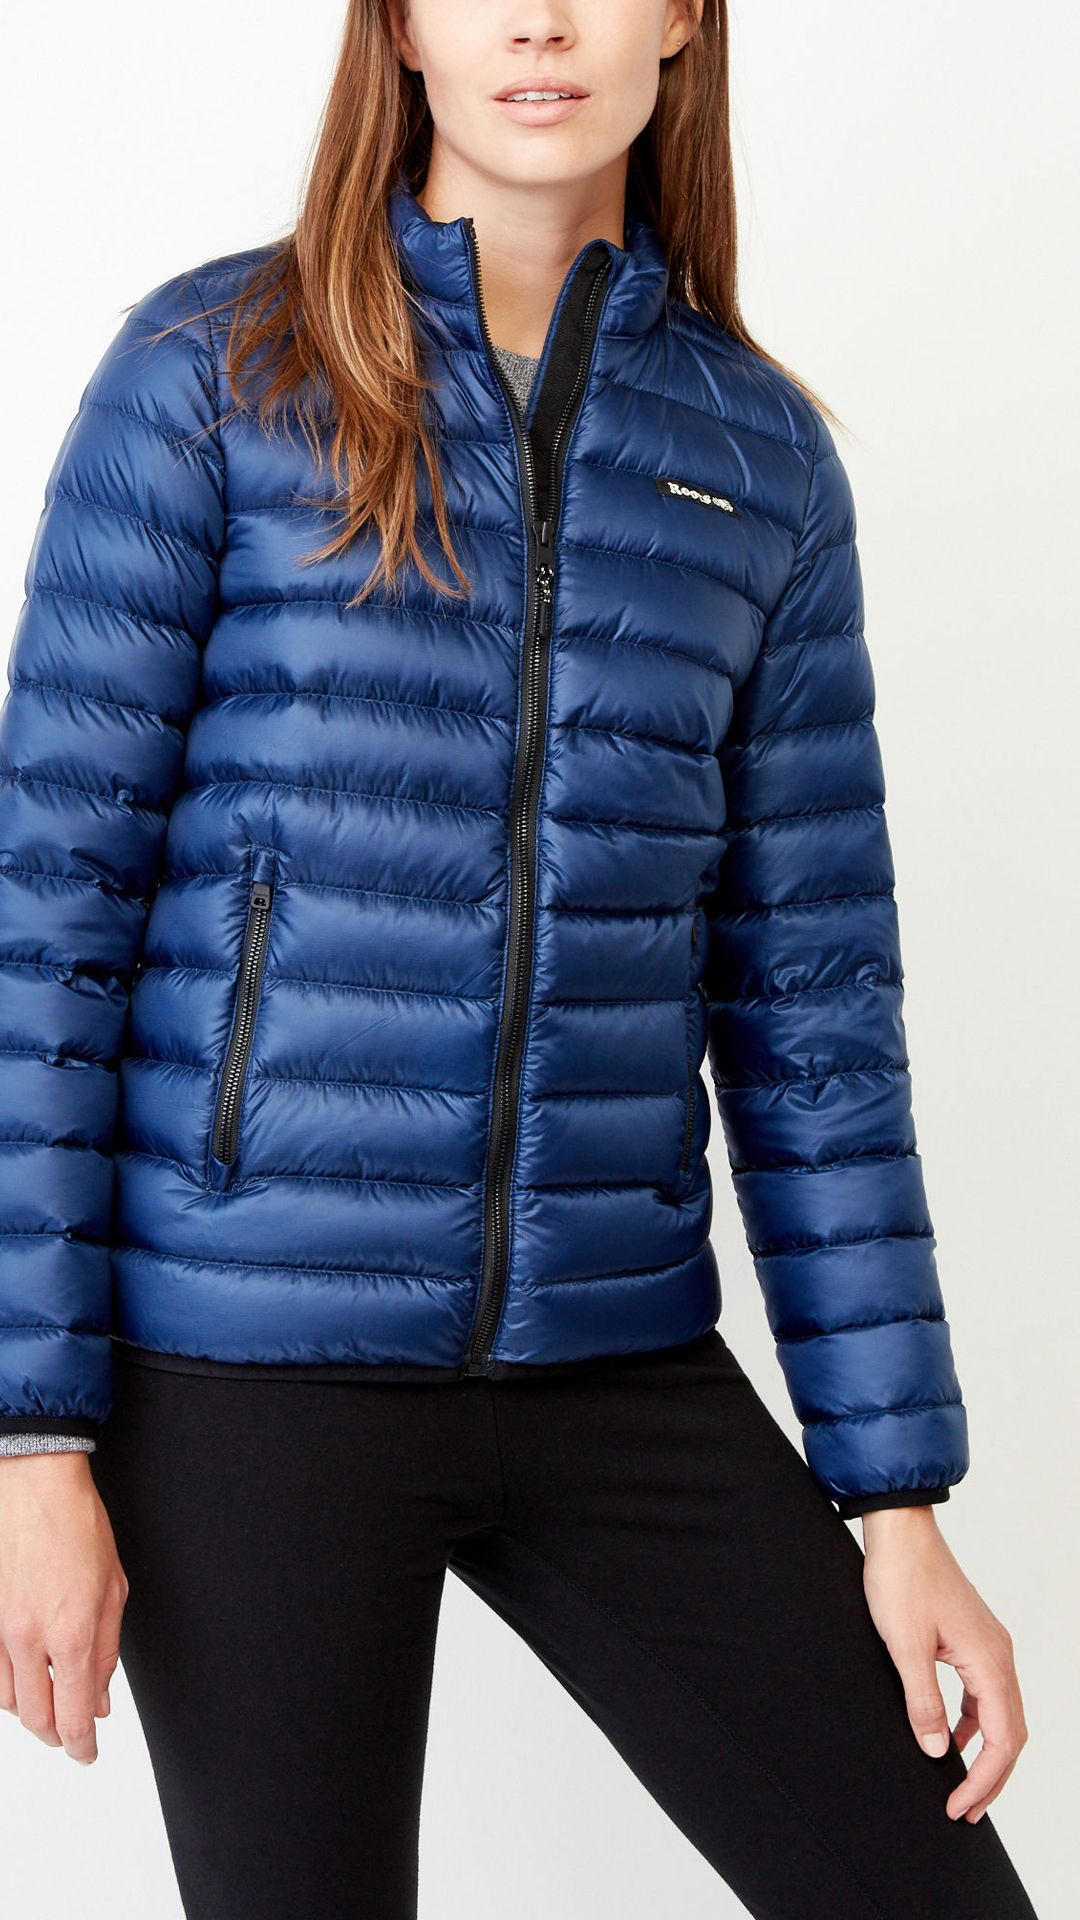 131f3085b5 Ready for any adventure, our Roots Packable Down Jacket is an easy-to-